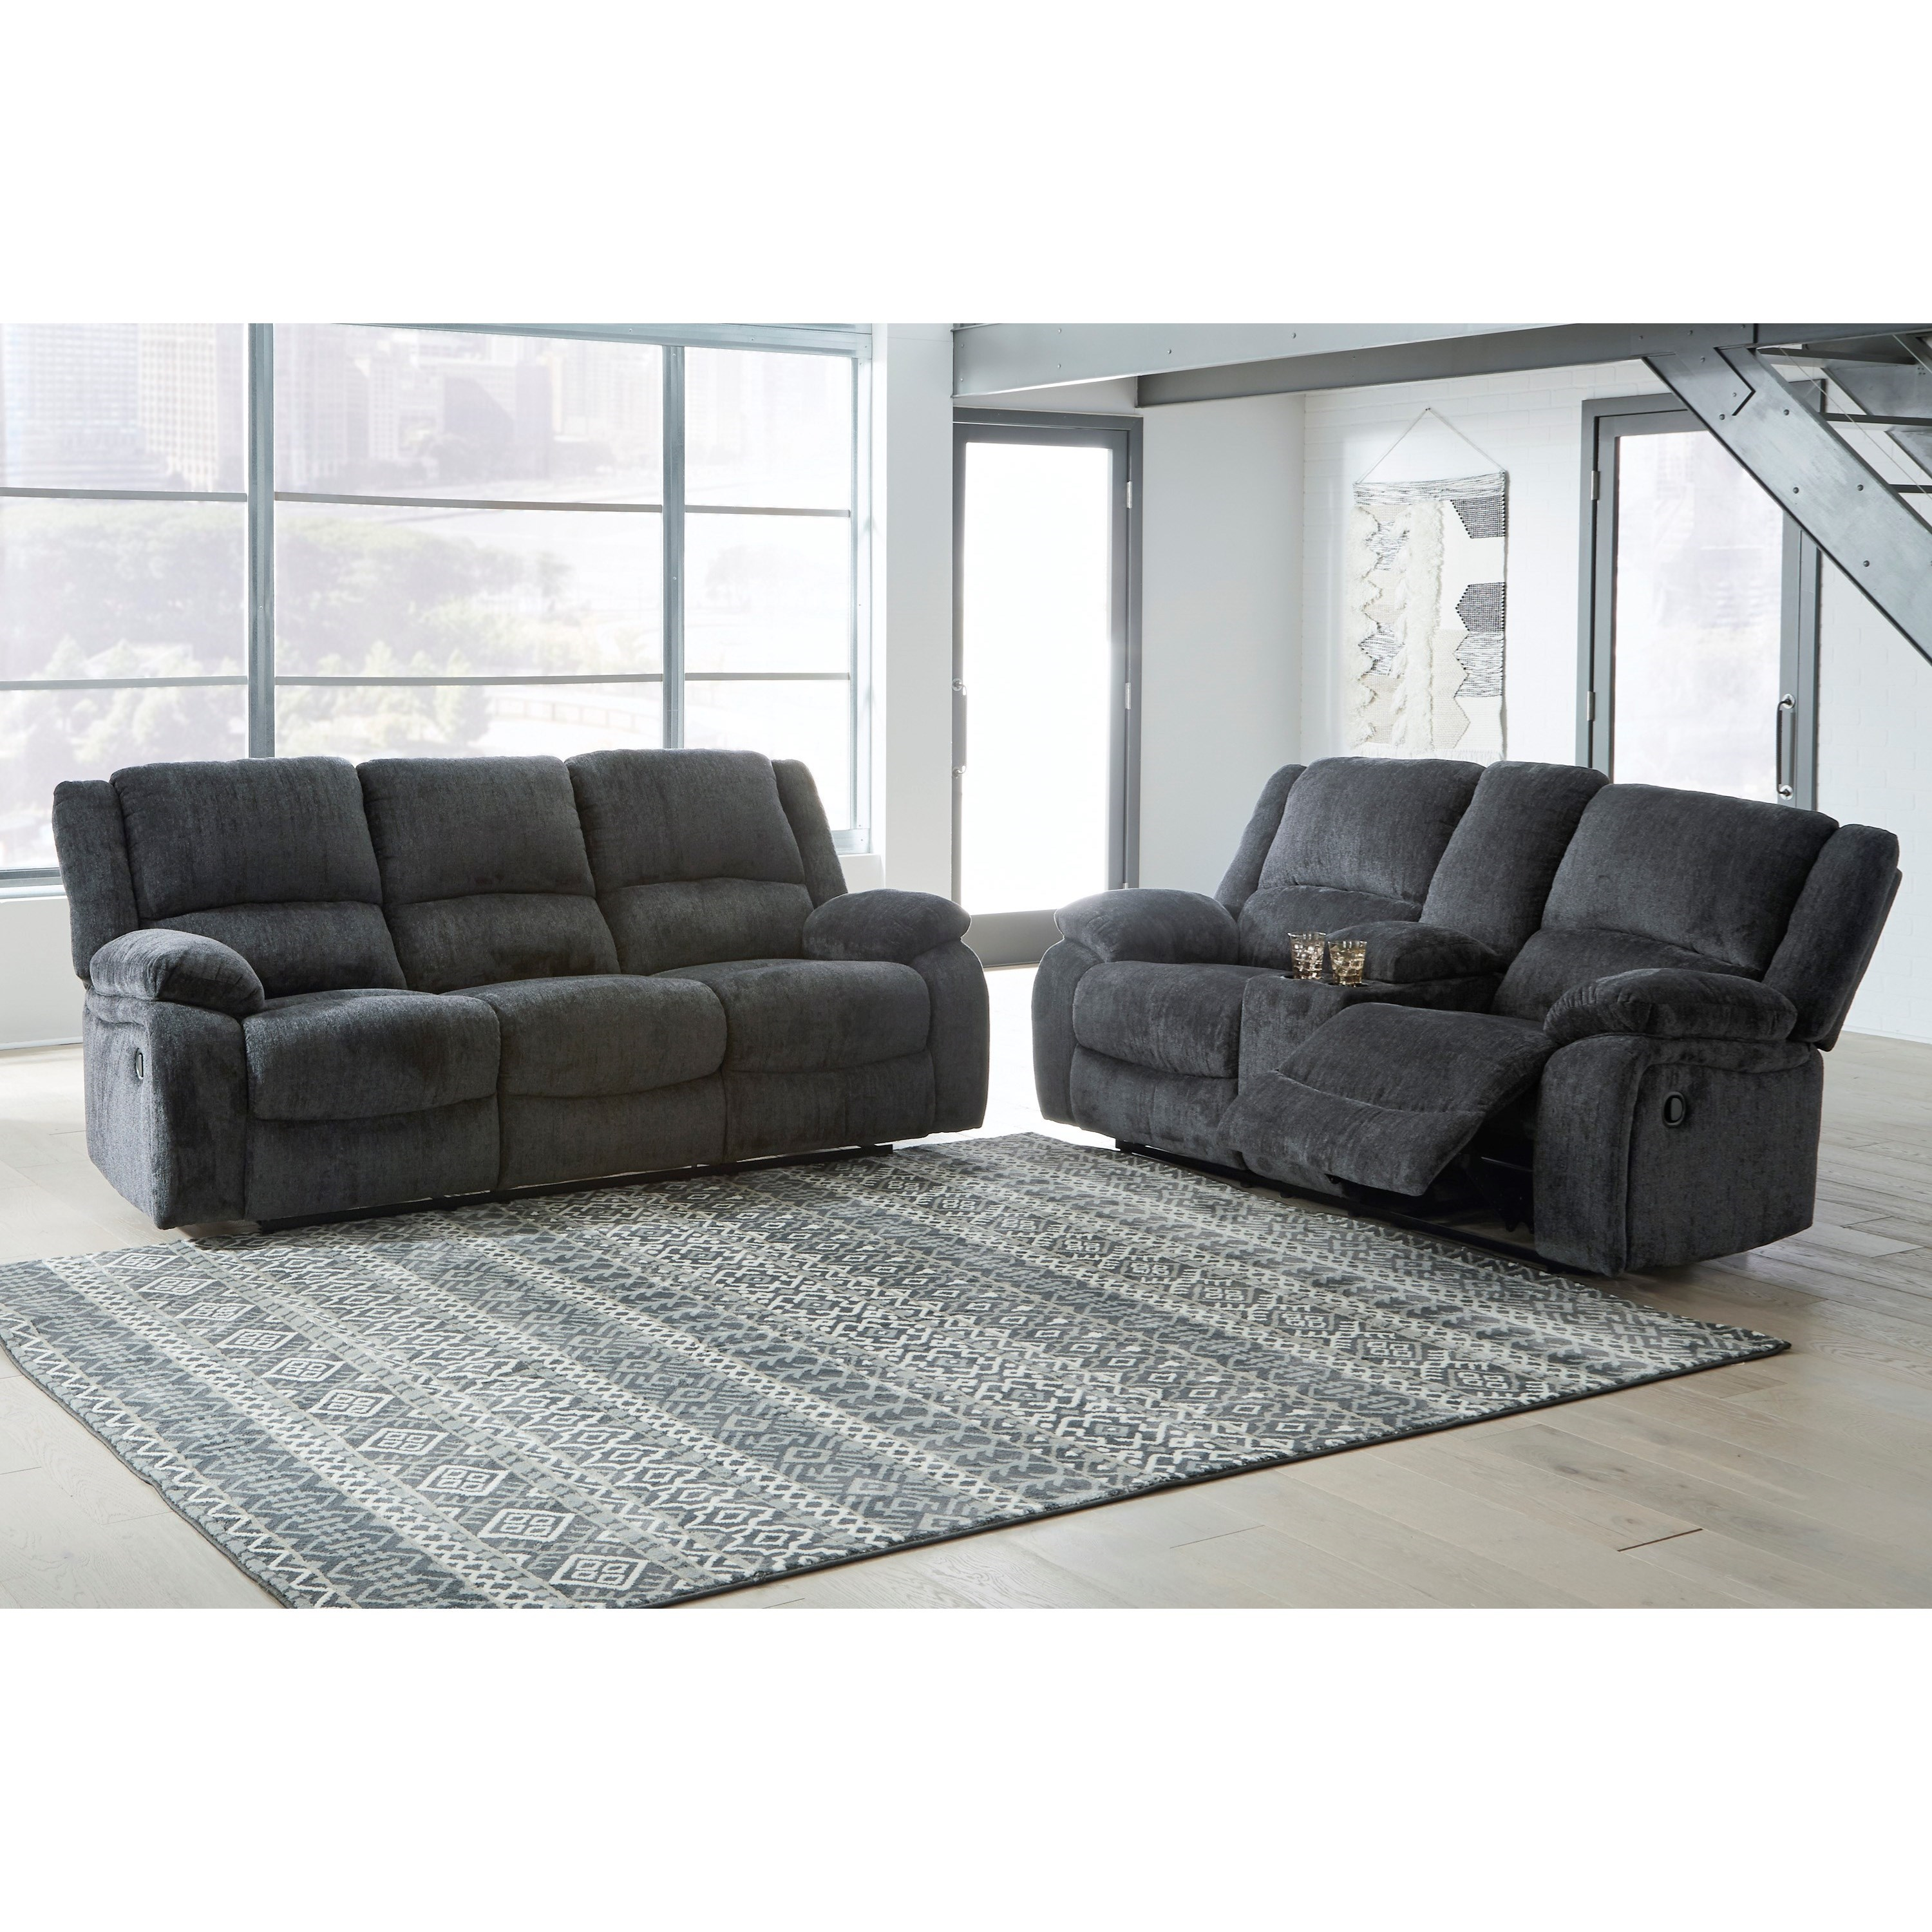 Draycoll Power Reclining Living Room Group by Ashley (Signature Design) at Johnny Janosik